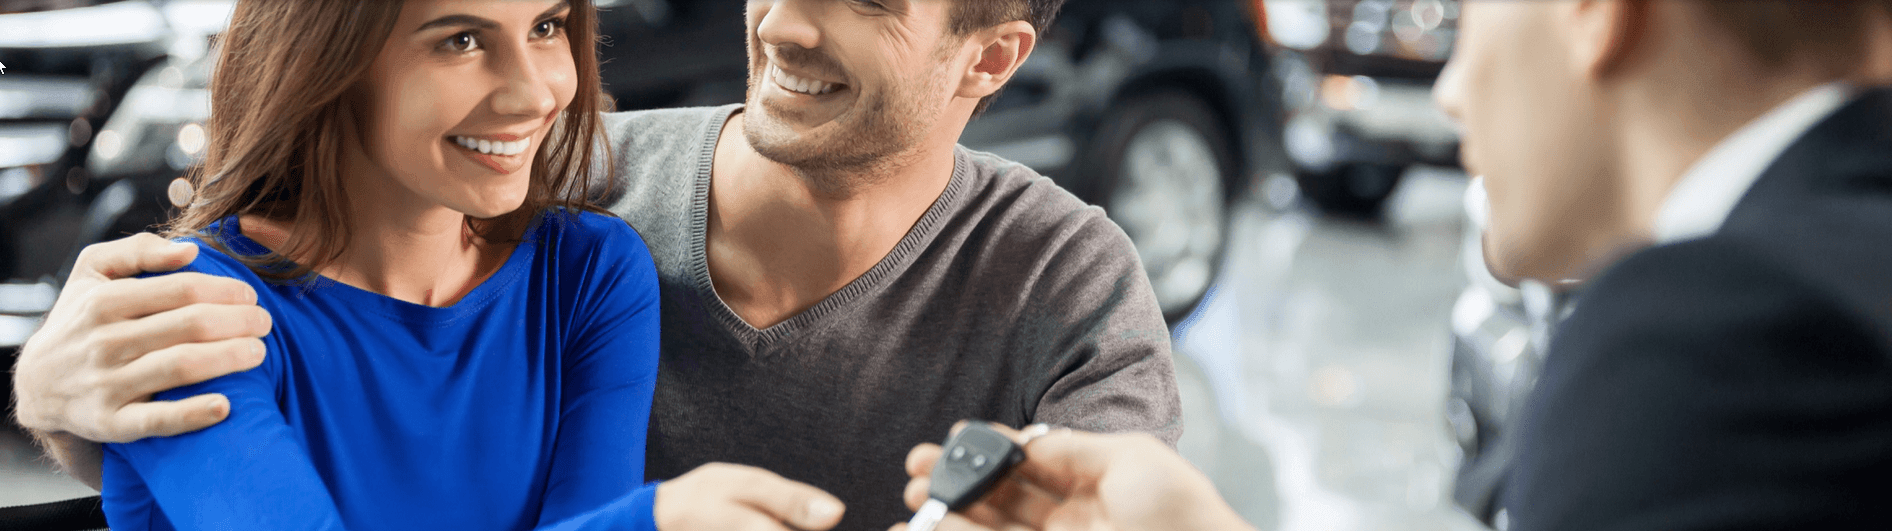 Key West Ford Auto Financing in Vancouver